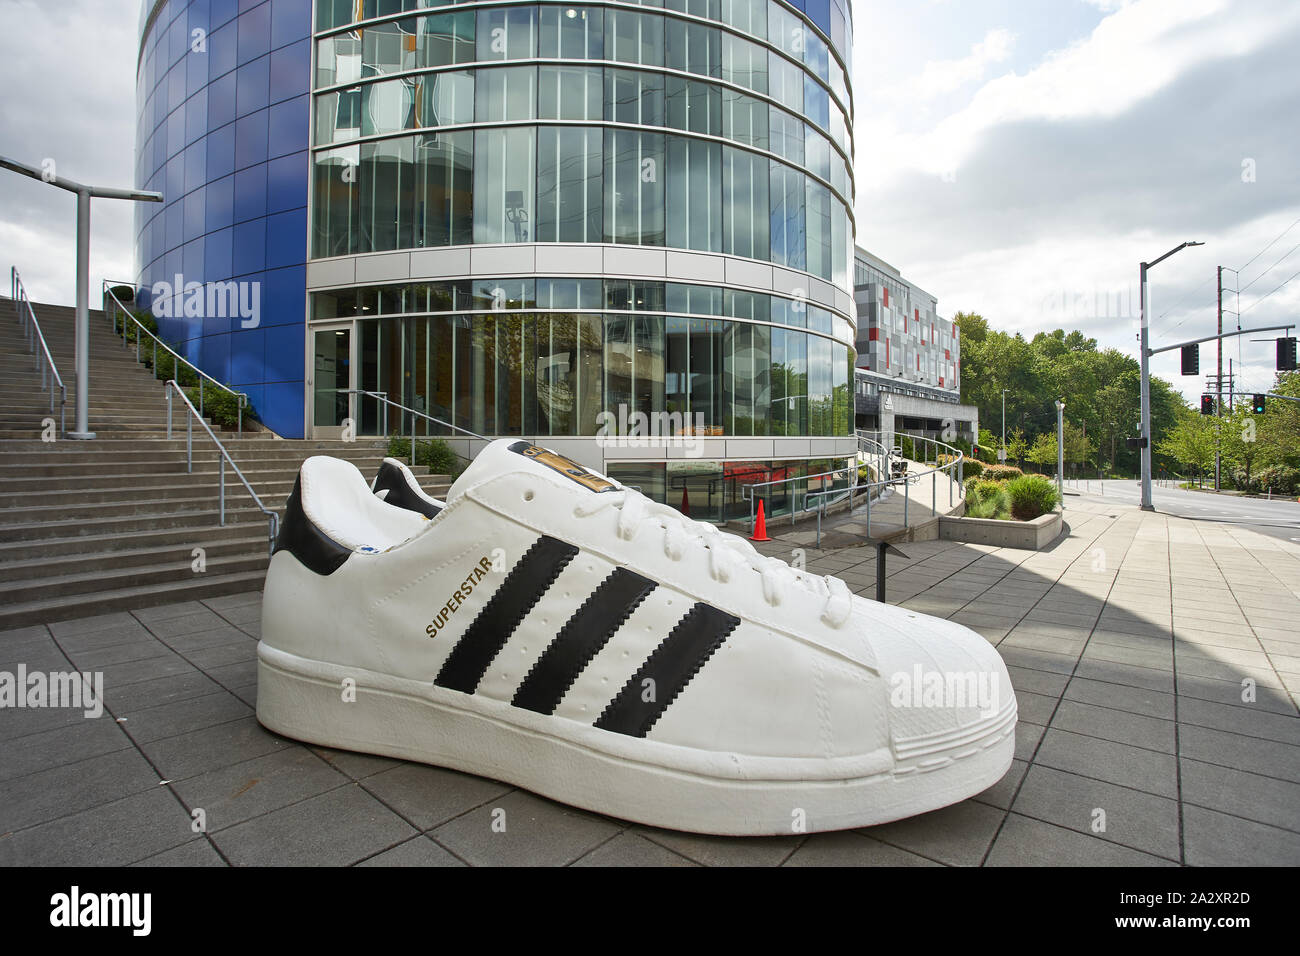 Embajador pureza sacerdote  Giant Adidas shoes are seen at the entrance to Adidas America Inc., the  North American Headquarters on May 2, 2019 Stock Photo - Alamy